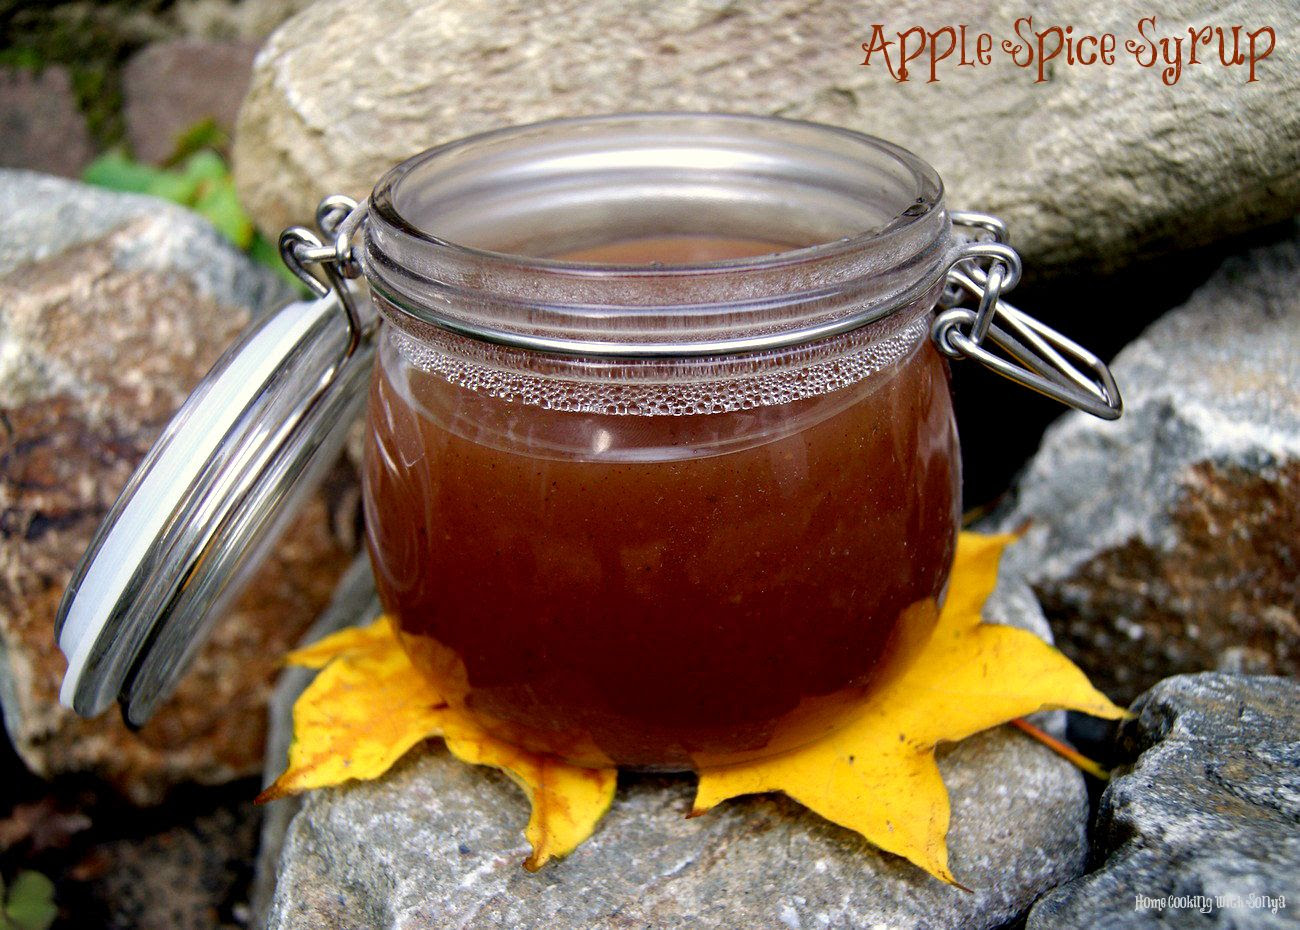 8-10, Apple Spice Syrup..Breakfast just got better :)